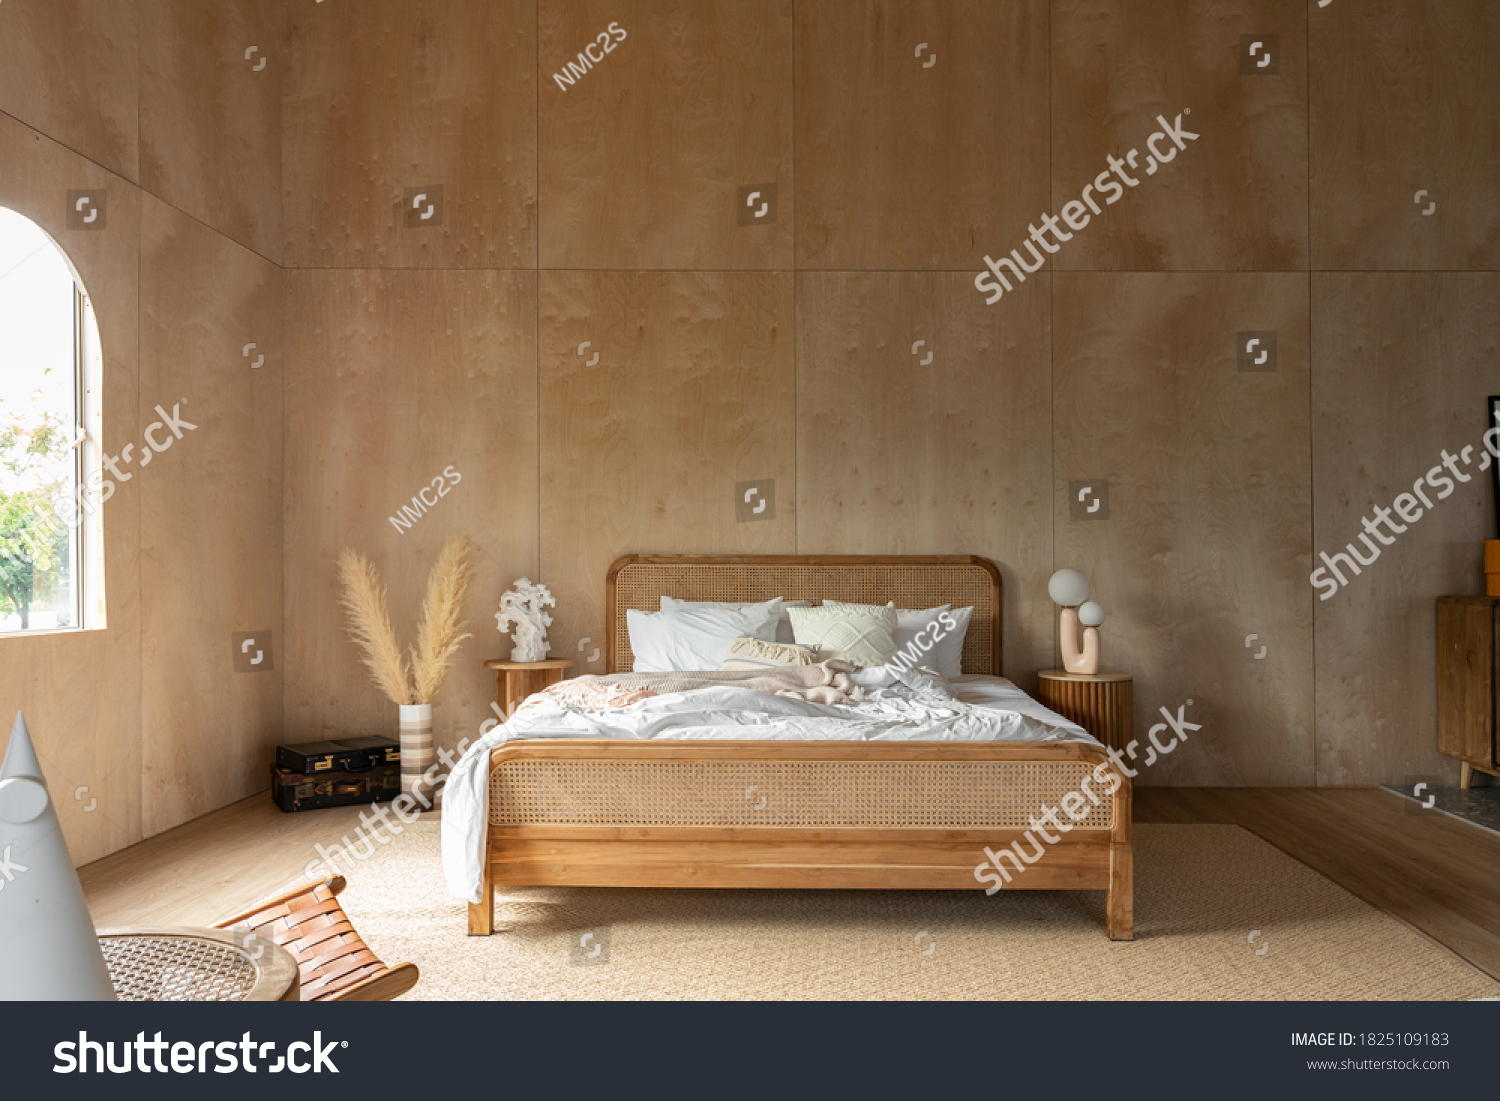 Stylish Bedroom corner with rattan headboard and bed with soft pillows setting with white pillows plywood wall on the background / cozy interior design / modern interior #1825109183